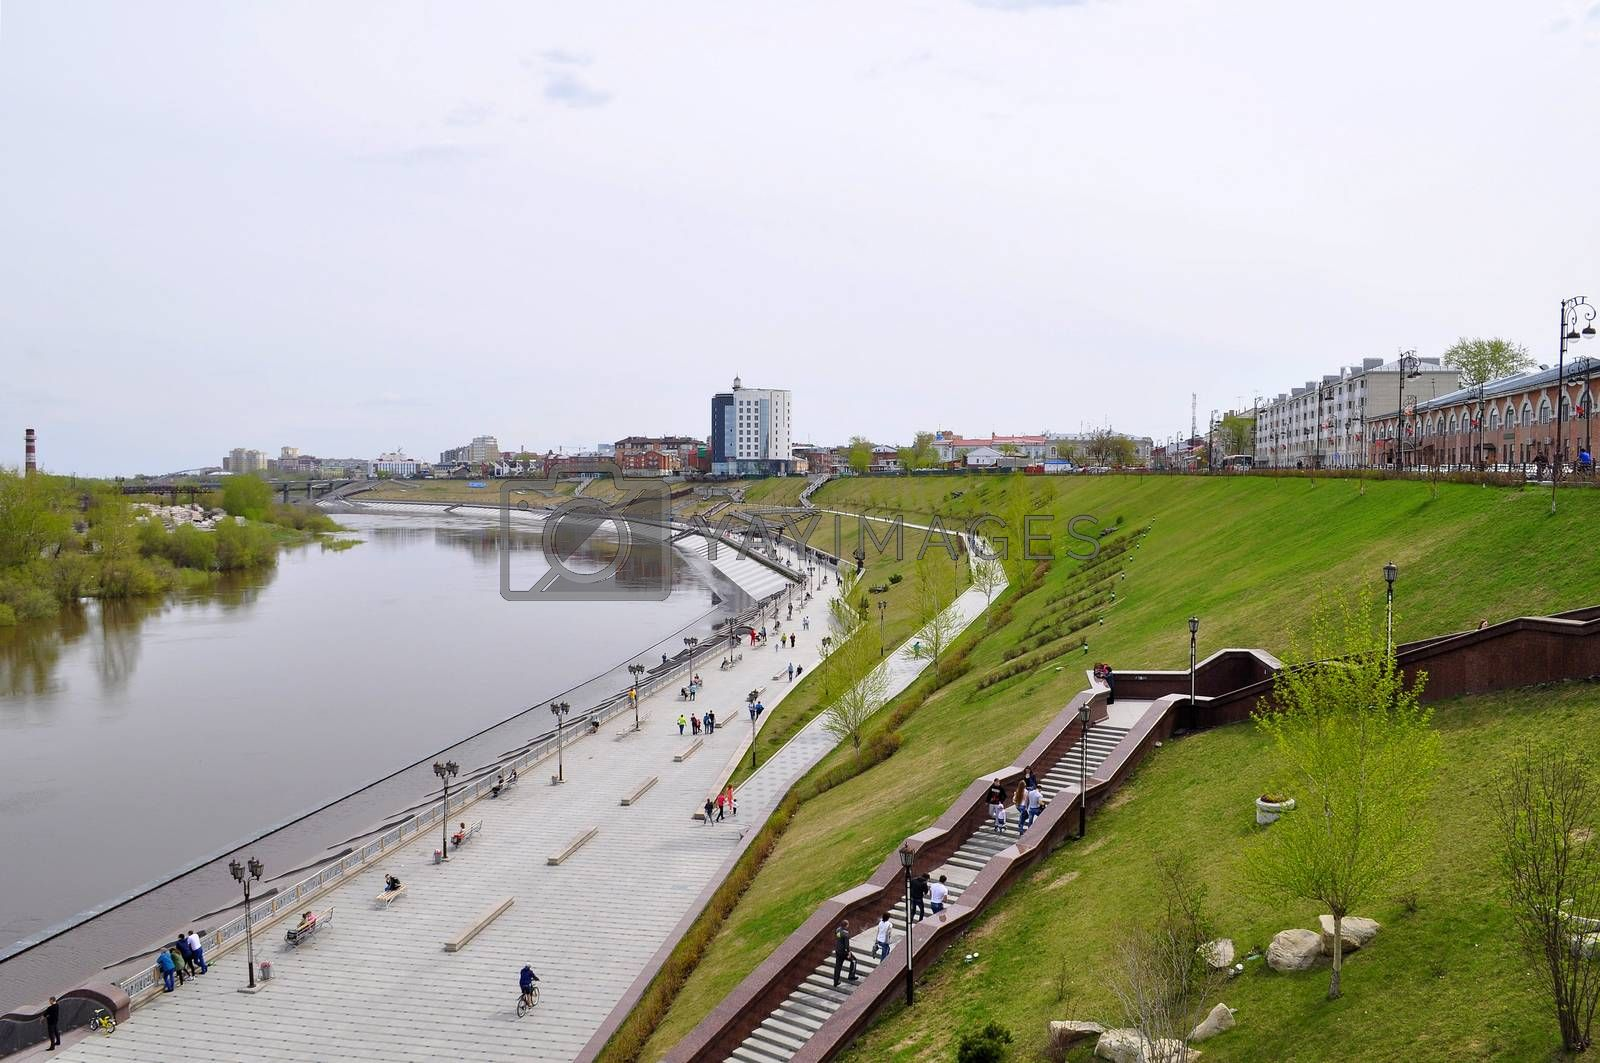 The embankment in Tyumen. Spring flood of the Tura River. by veronka72